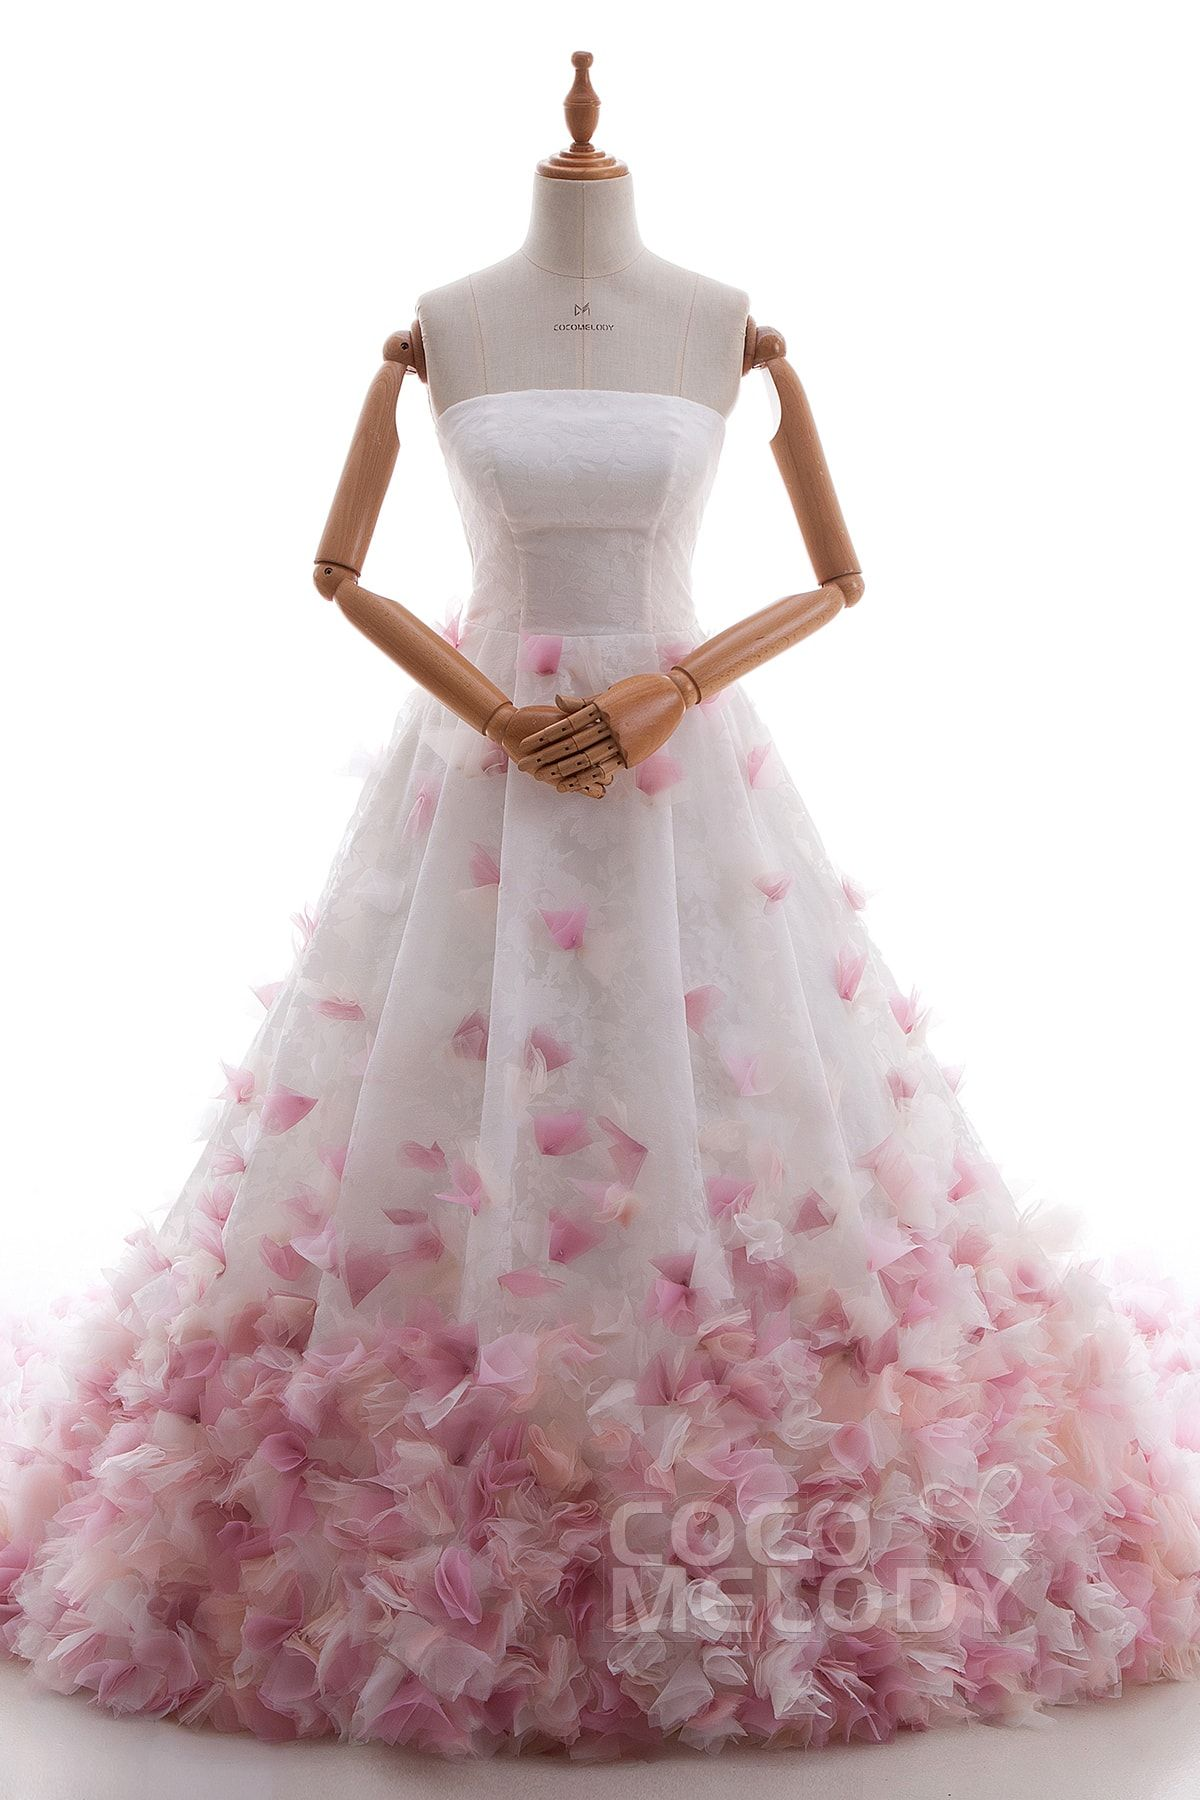 Fantastic+A-Line+Strapless+Natural+Chapel+Train+Satin+and+Organza+As+Picture+Sleeveless+Lace+Up-Corset+Wedding+Dress+with+Flower+LD4532